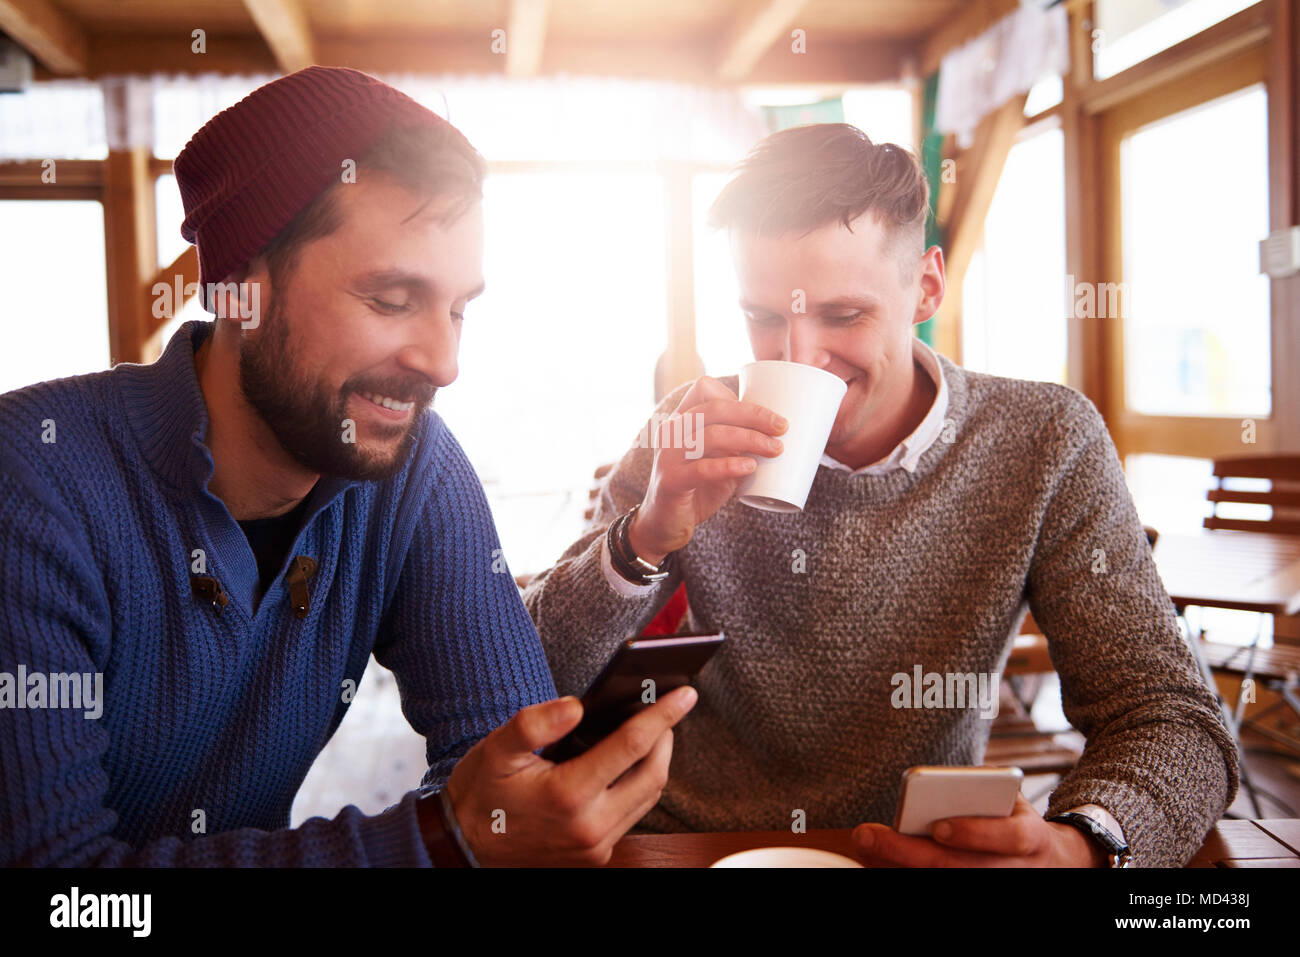 Young men smiling over text message on mobile phones Stock Photo